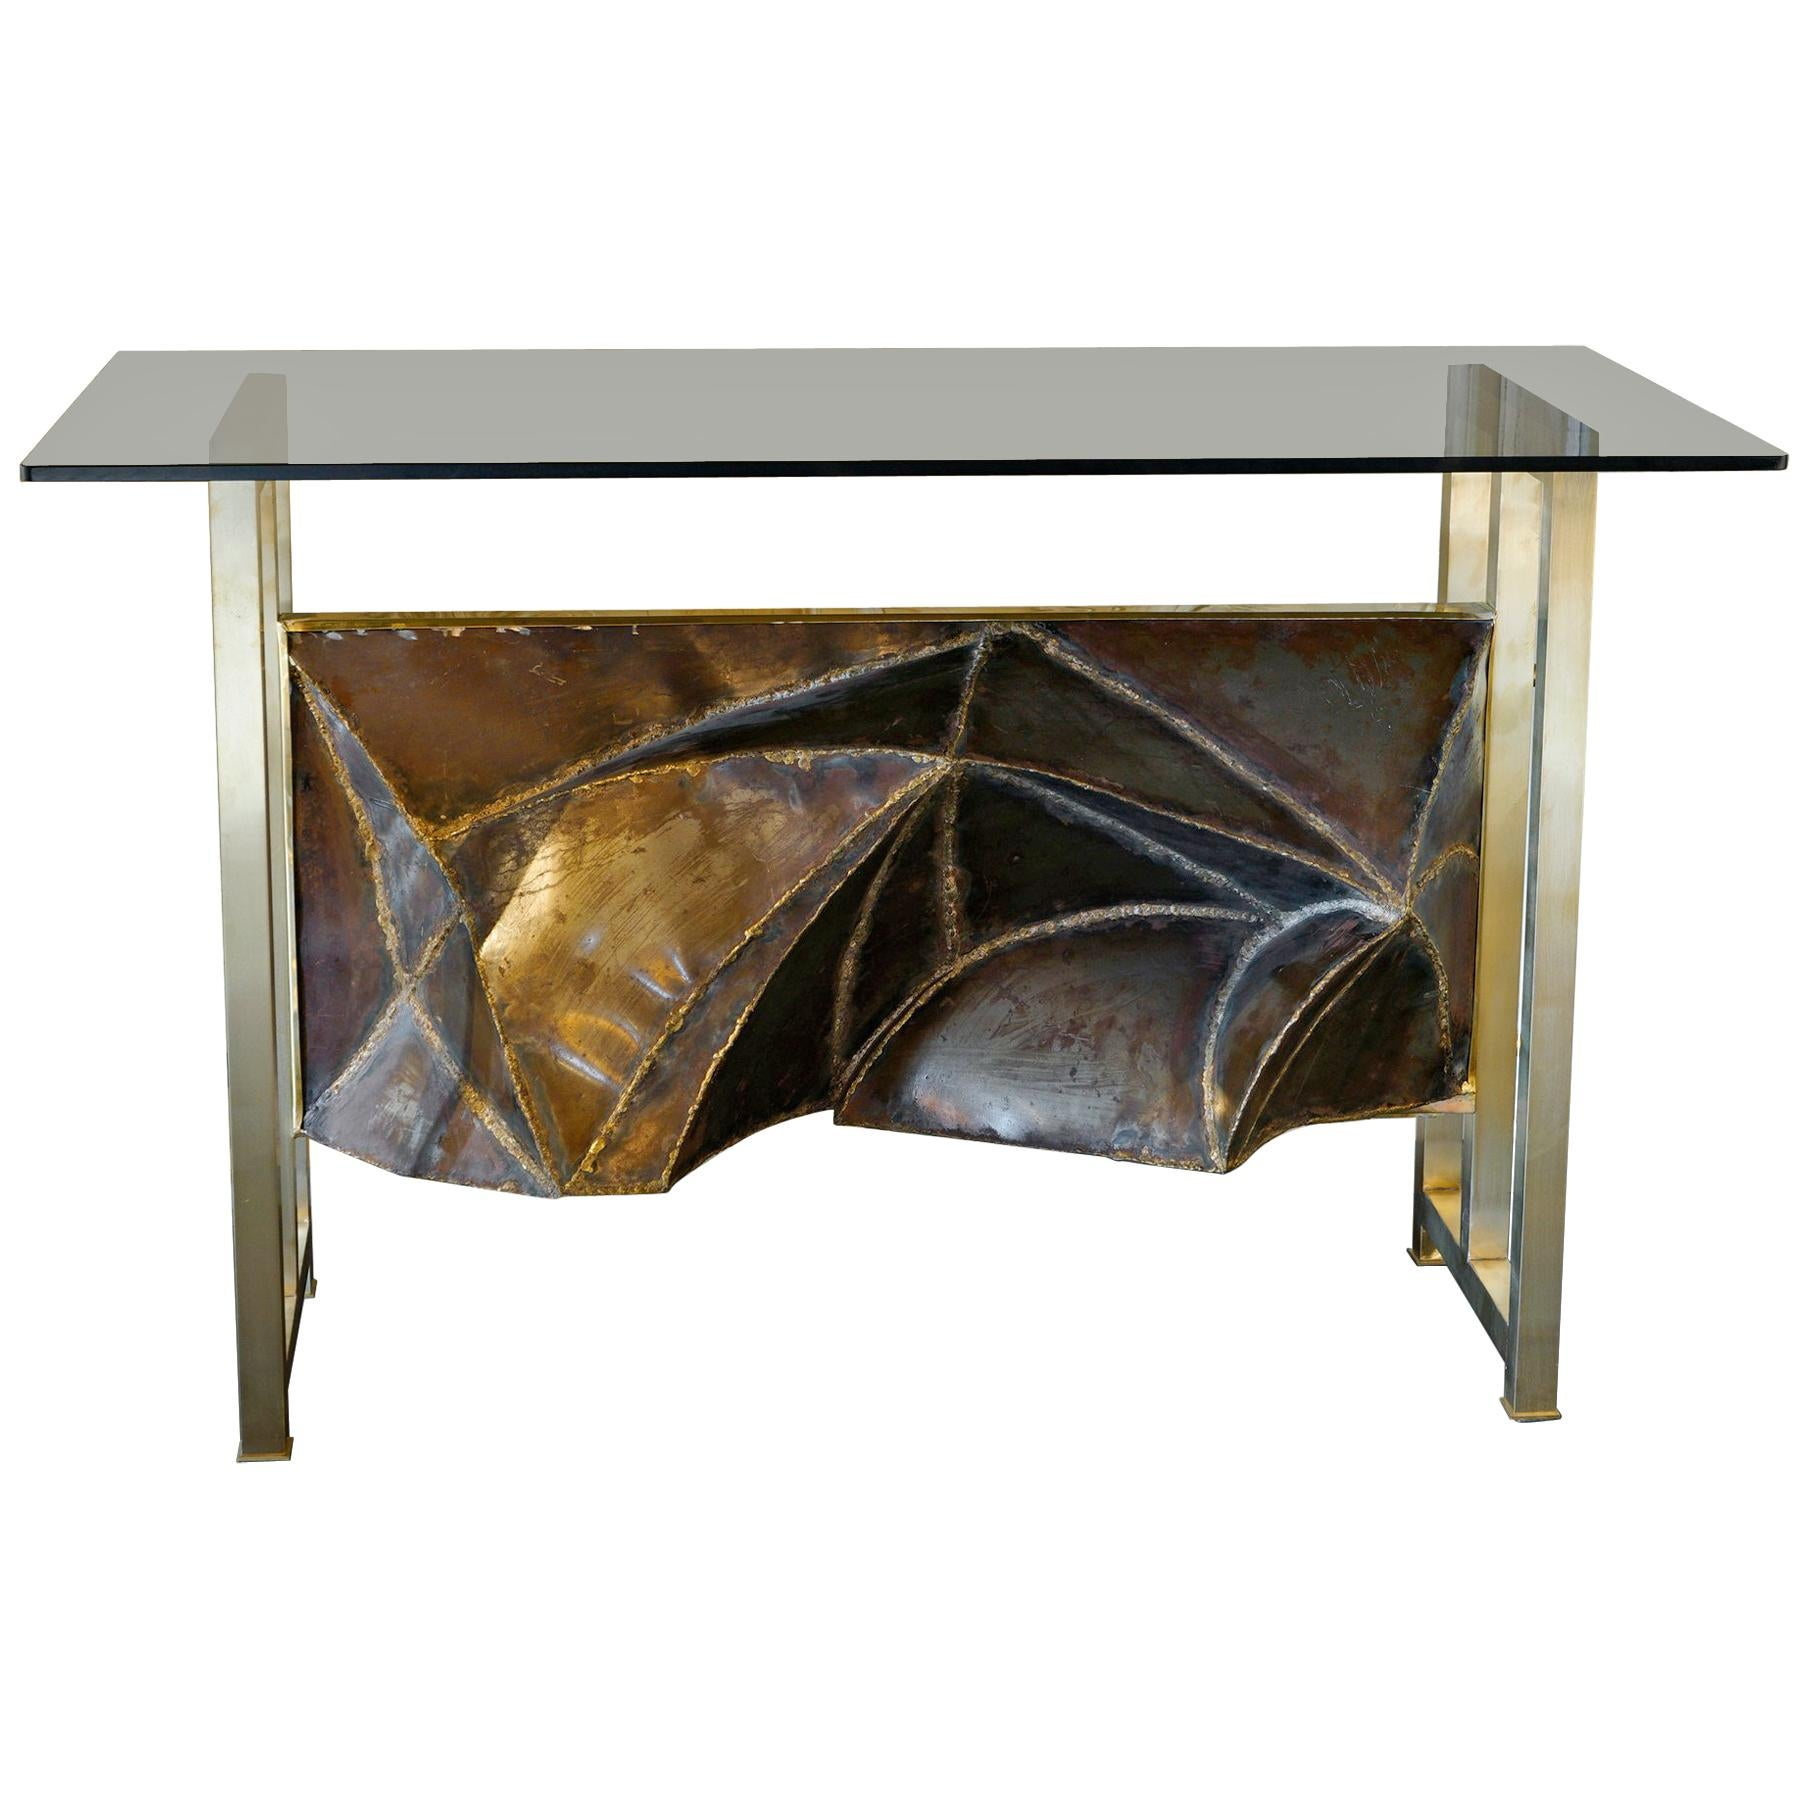 Contemporary Brass Console with 1970s Aluminum Frieze, Glass Top, Italy, 2019